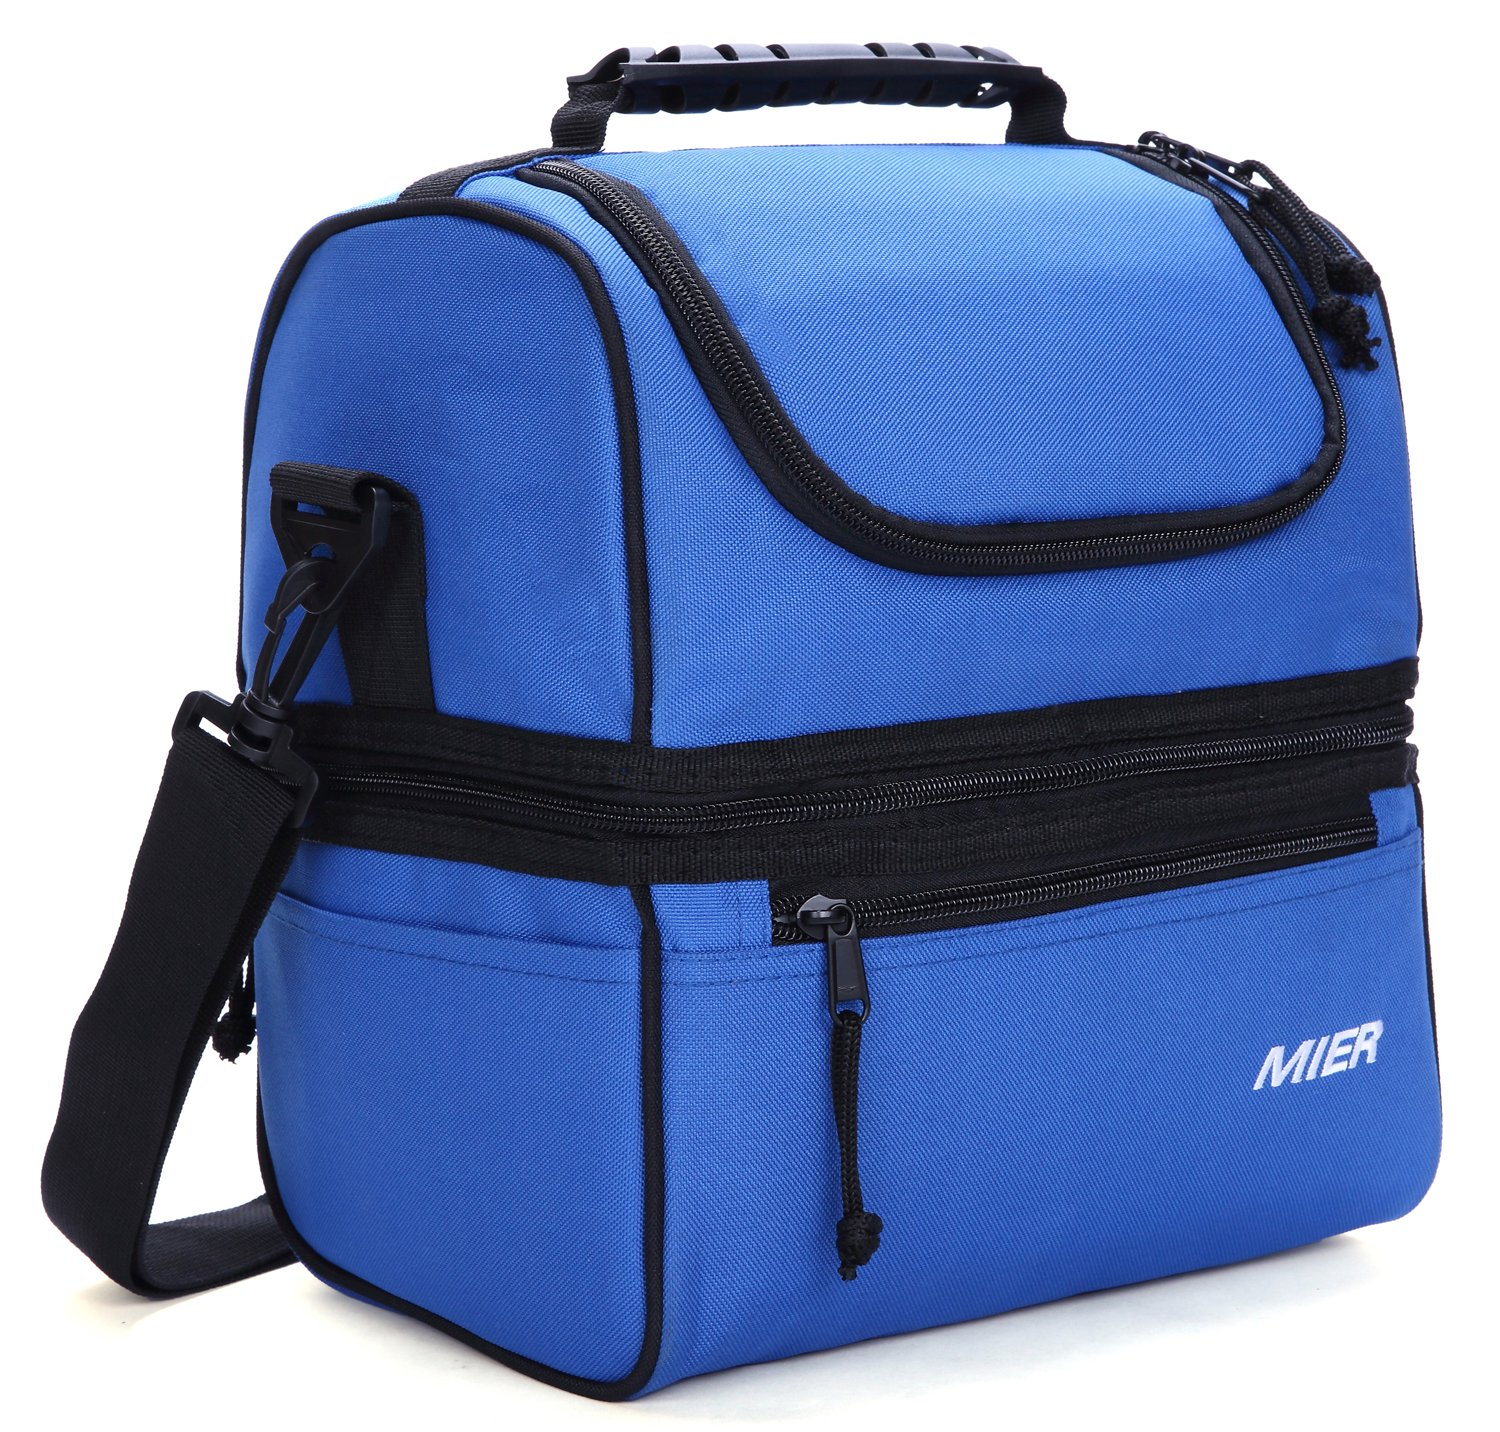 MIER Adult Lunch Box Insulated Lunch Bag Large Cooler Tote Bag for Men, Women, Double Deck Cooler(Navy Blue) by MIER